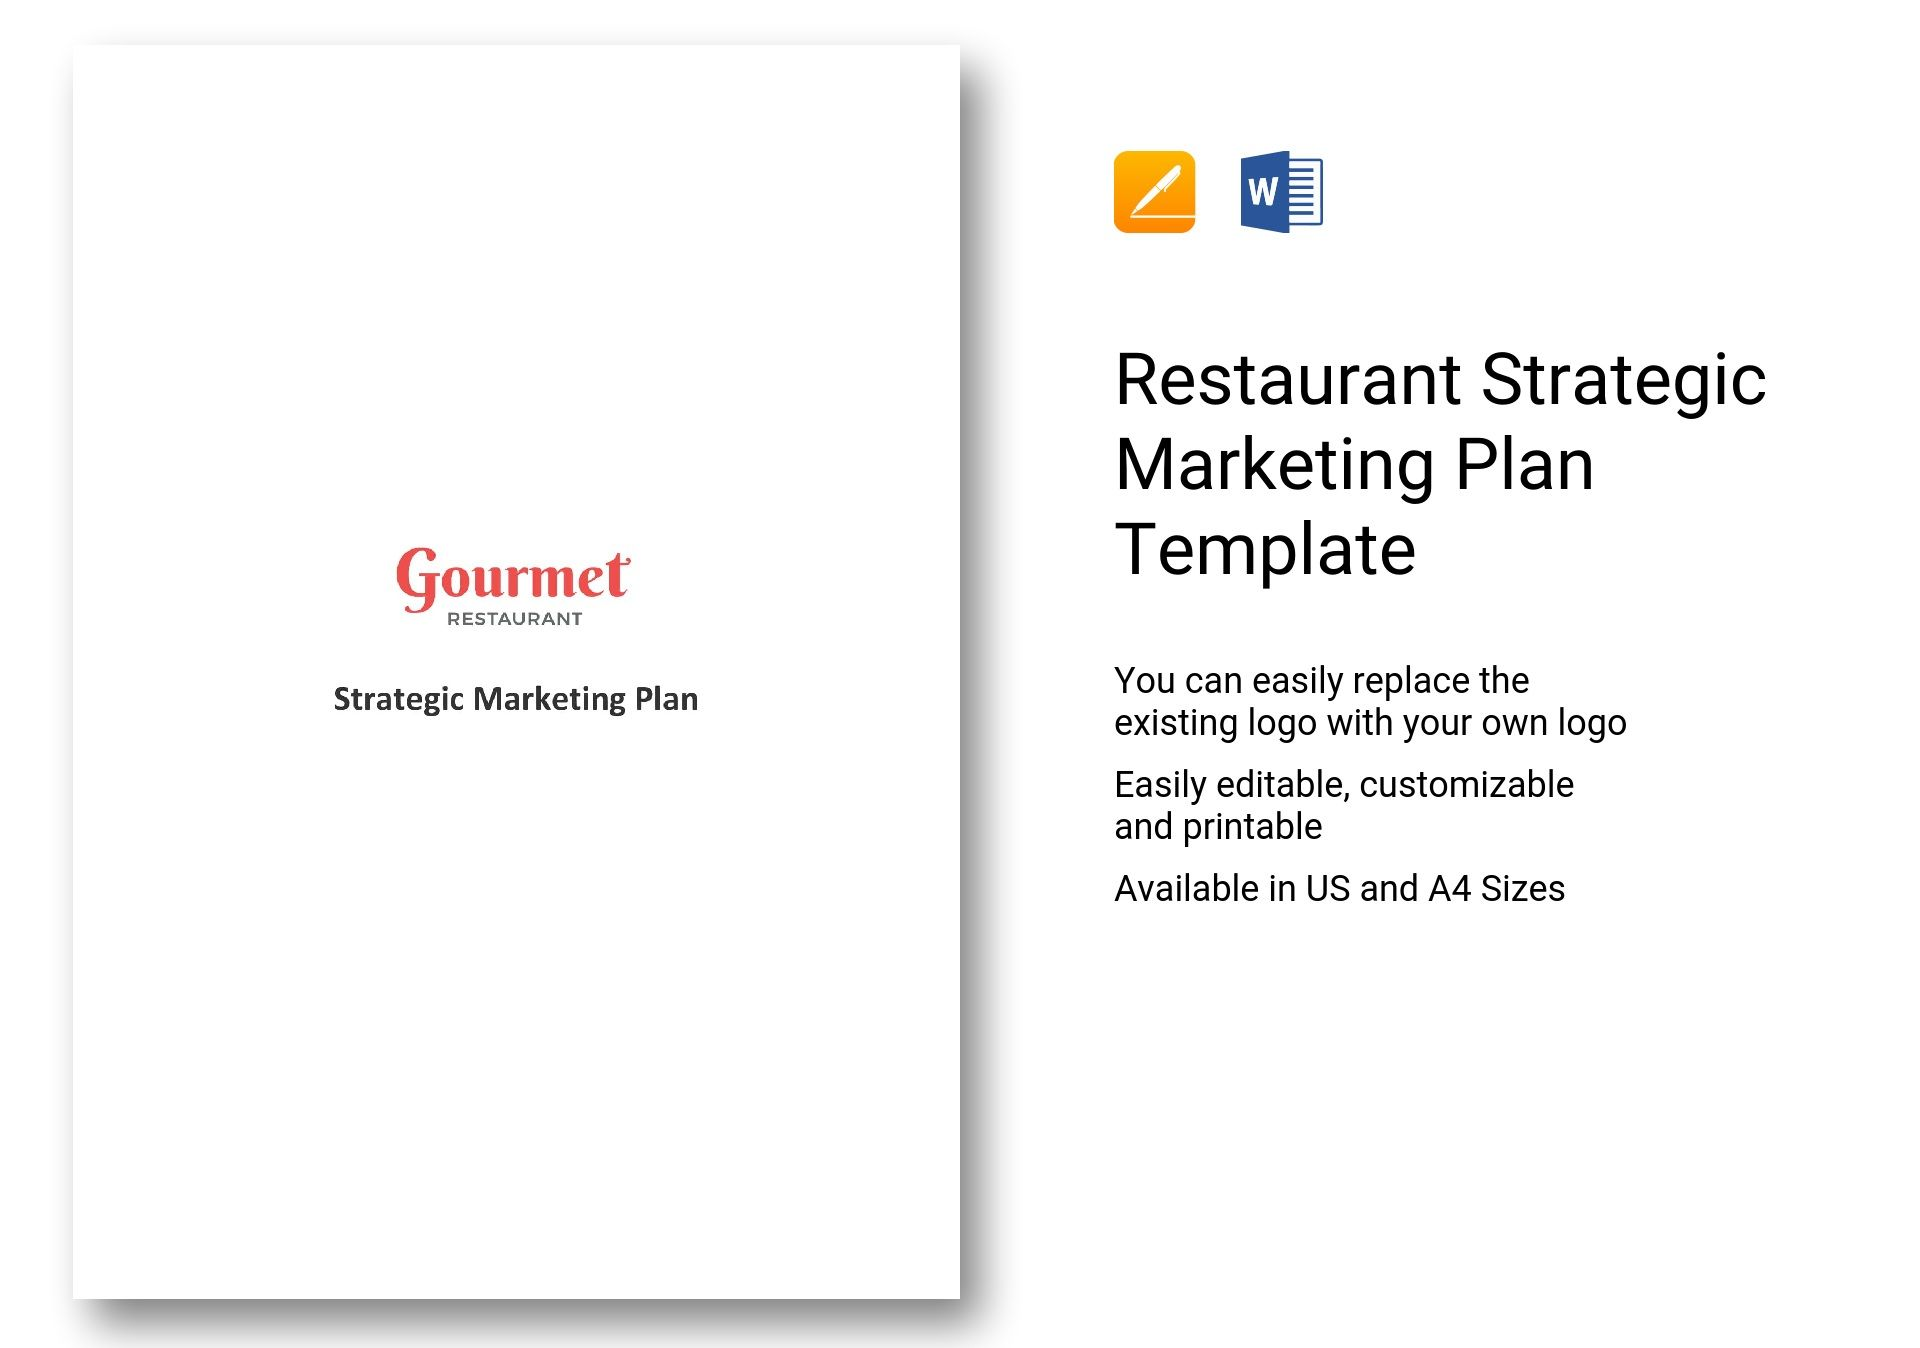 Restaurant Strategic Marketing Plan Template In Word Apple Pages